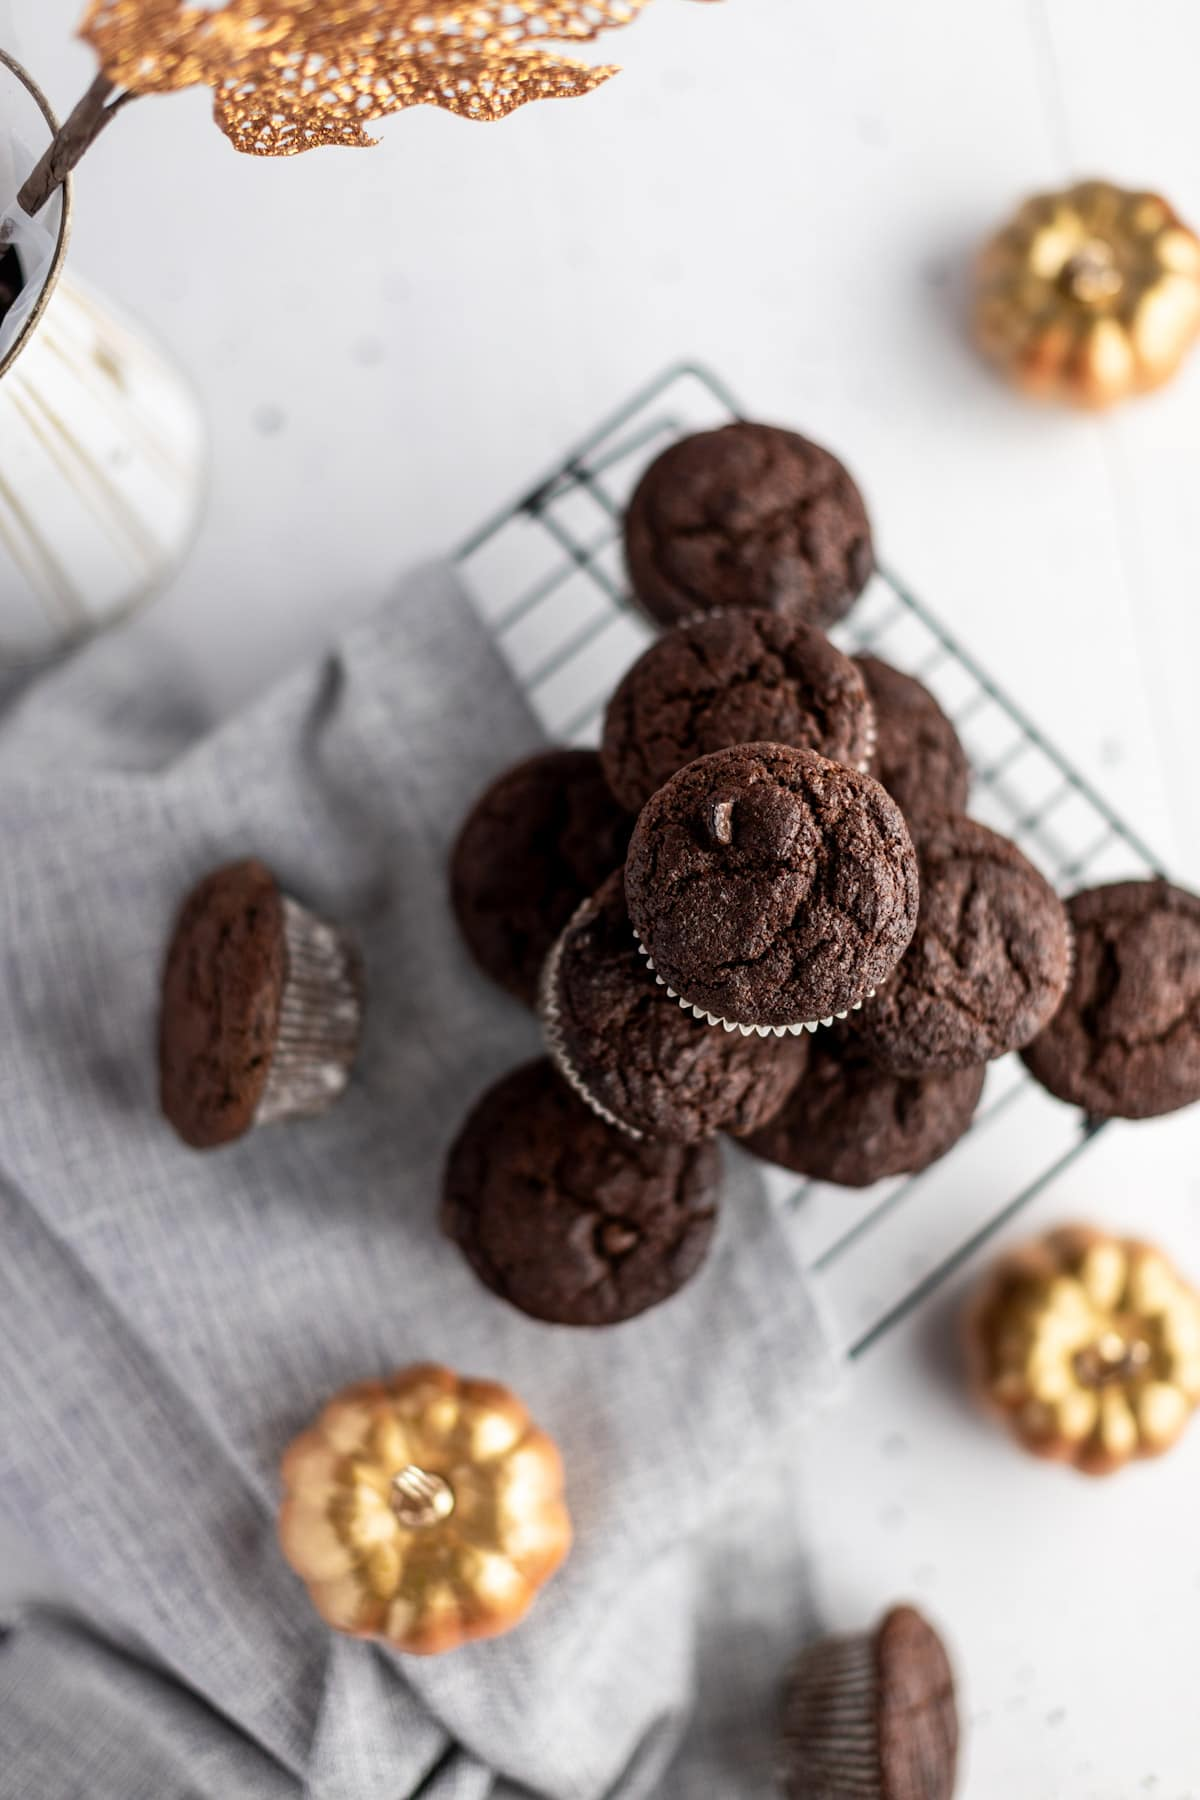 Overhead photo of a stack of chocolate pumpkin muffins, on a grey napkin, surrounded by decorative gold pumpkins.